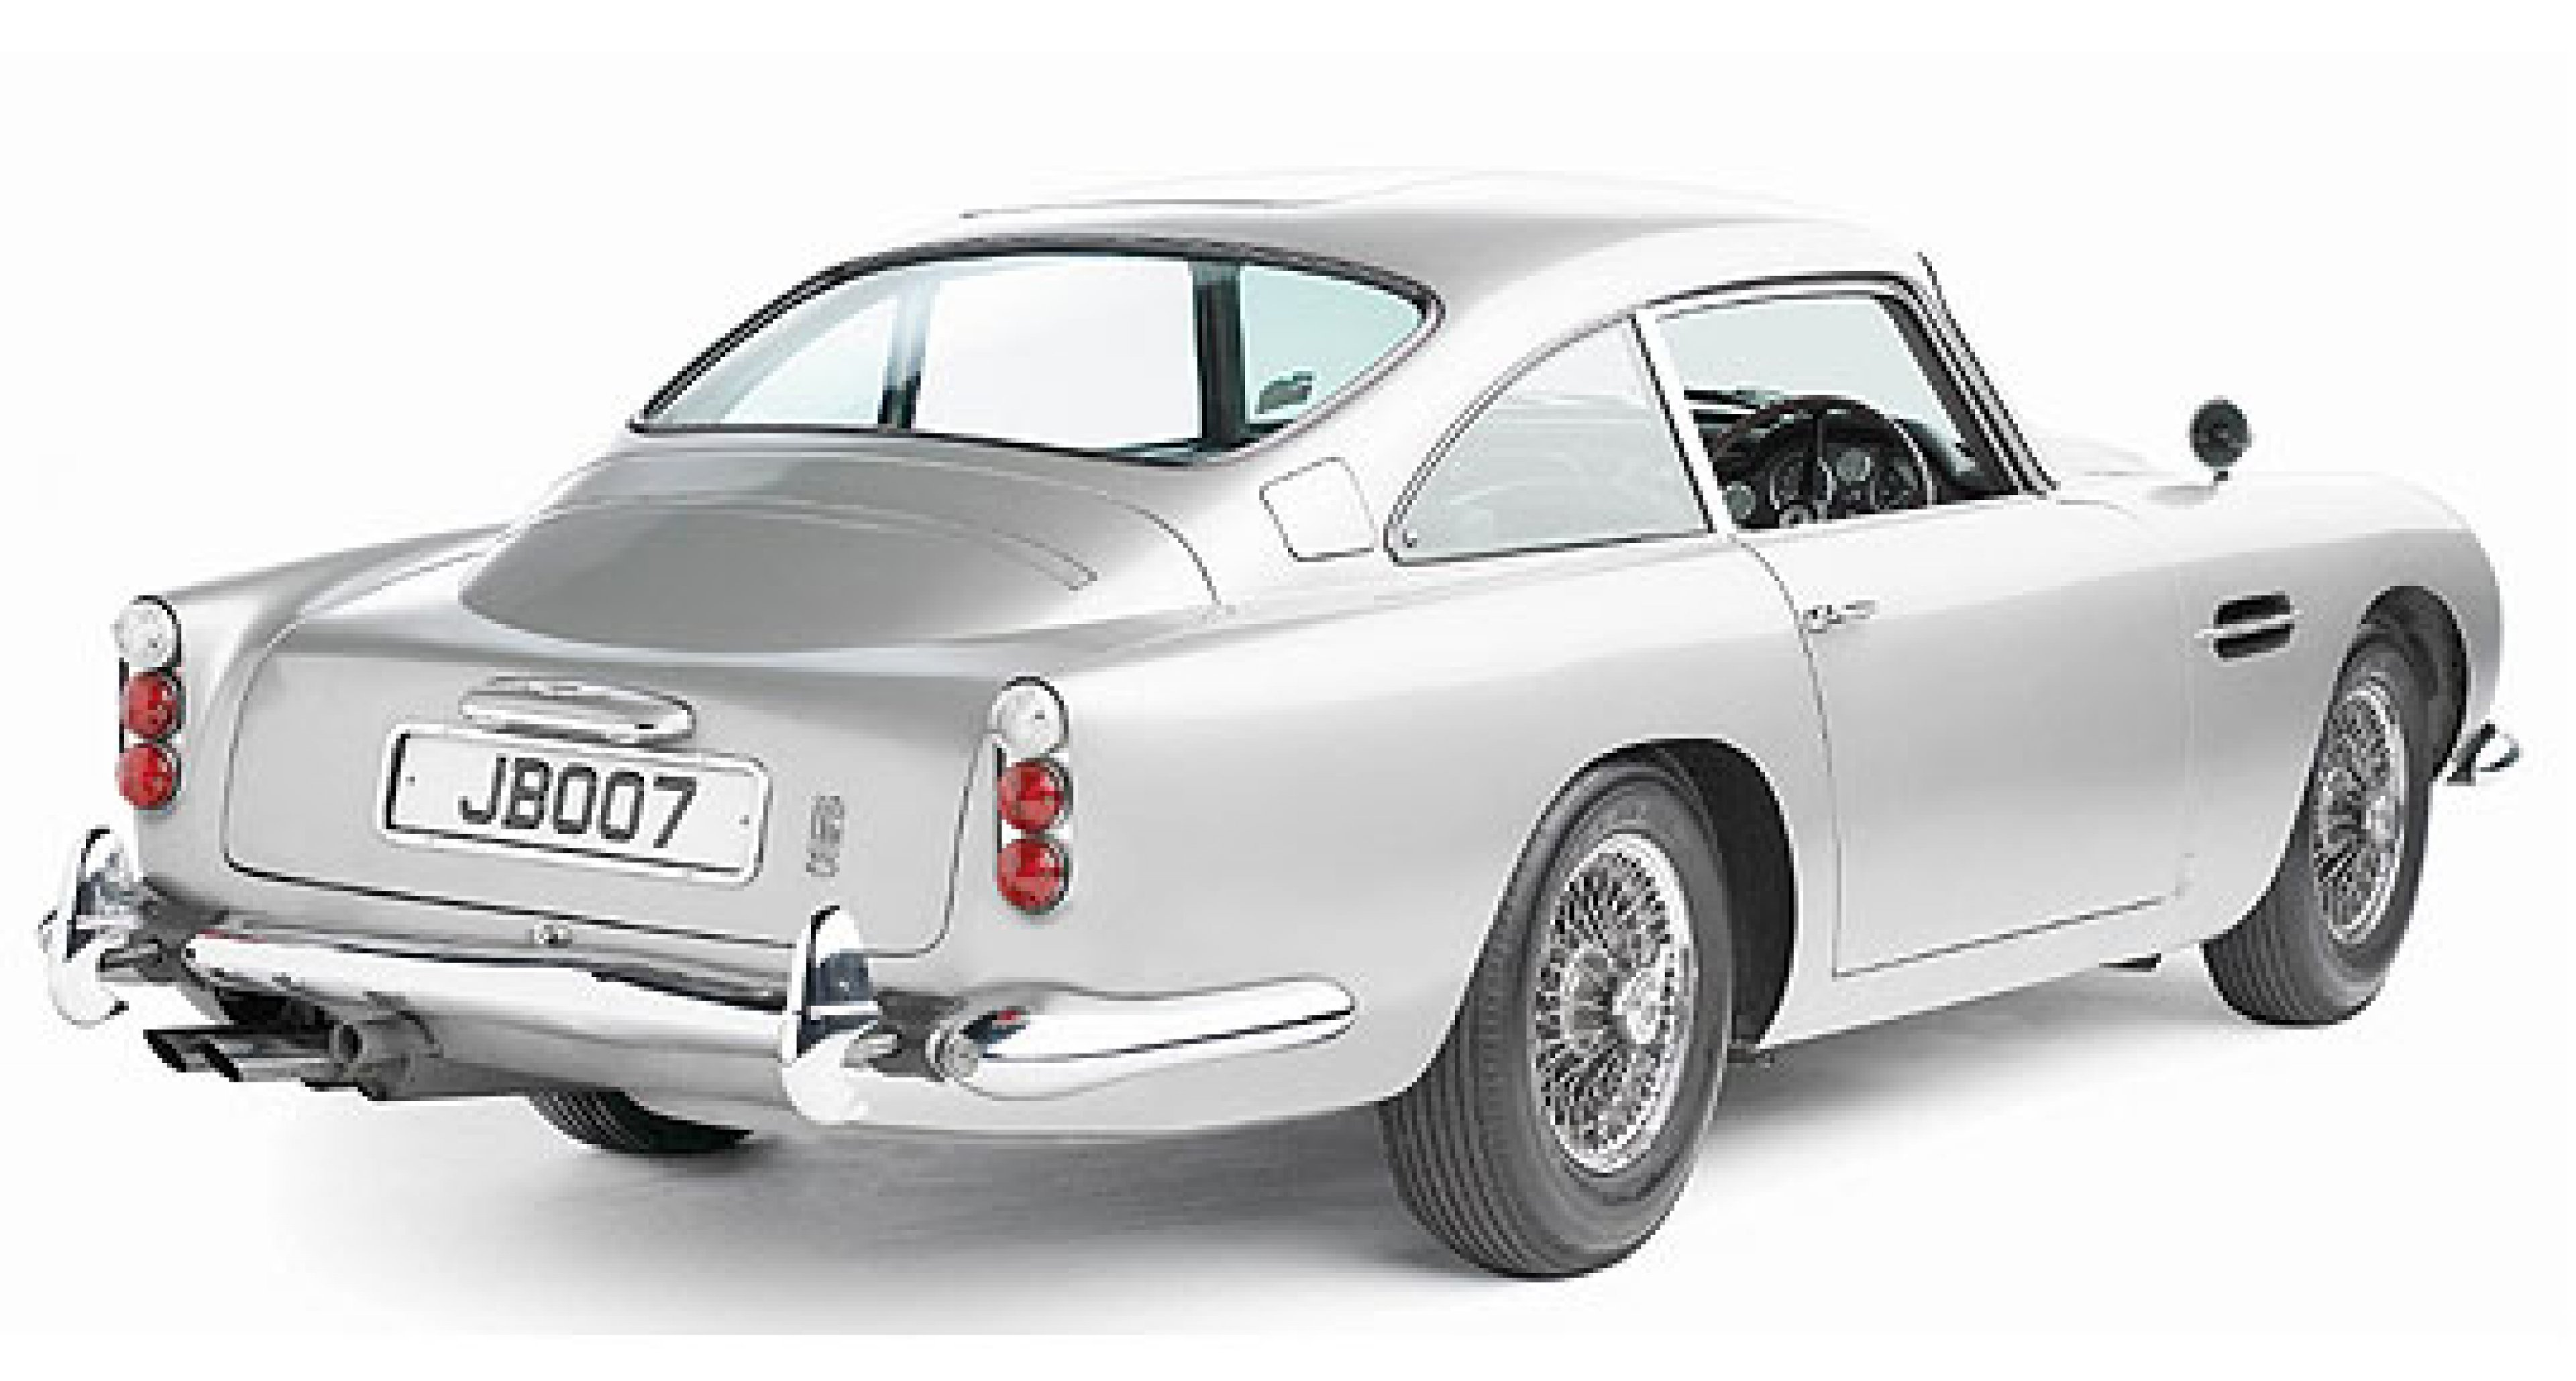 Original 'Bond' DB5 to be sold in 2006